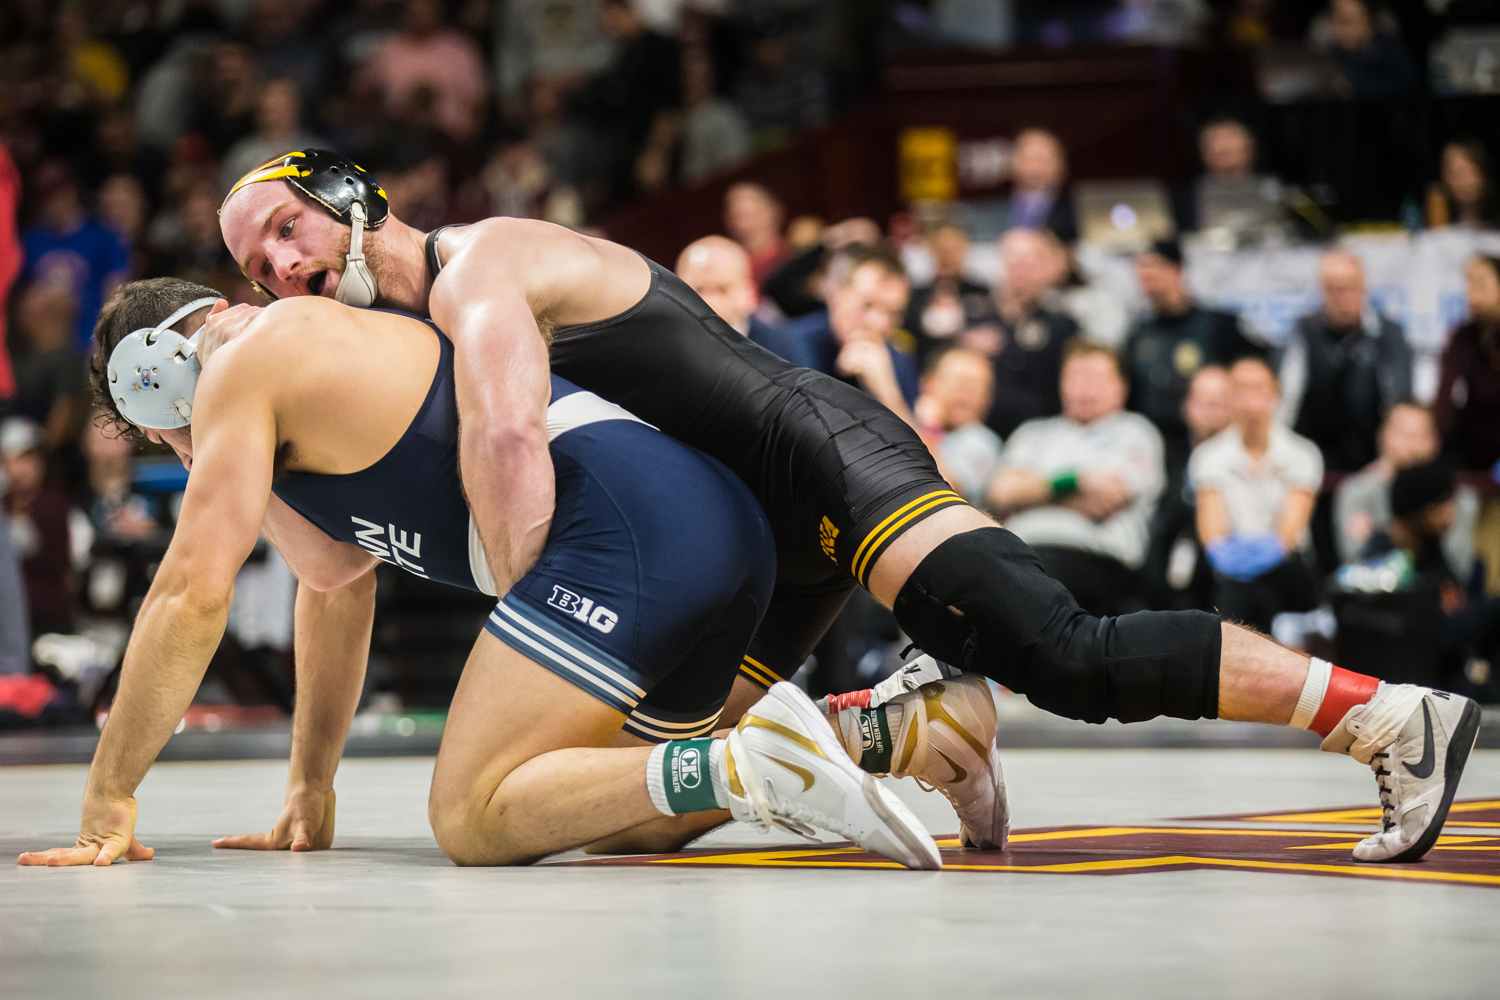 Numbers suggest mixed reviews for Iowa wrestling at Big